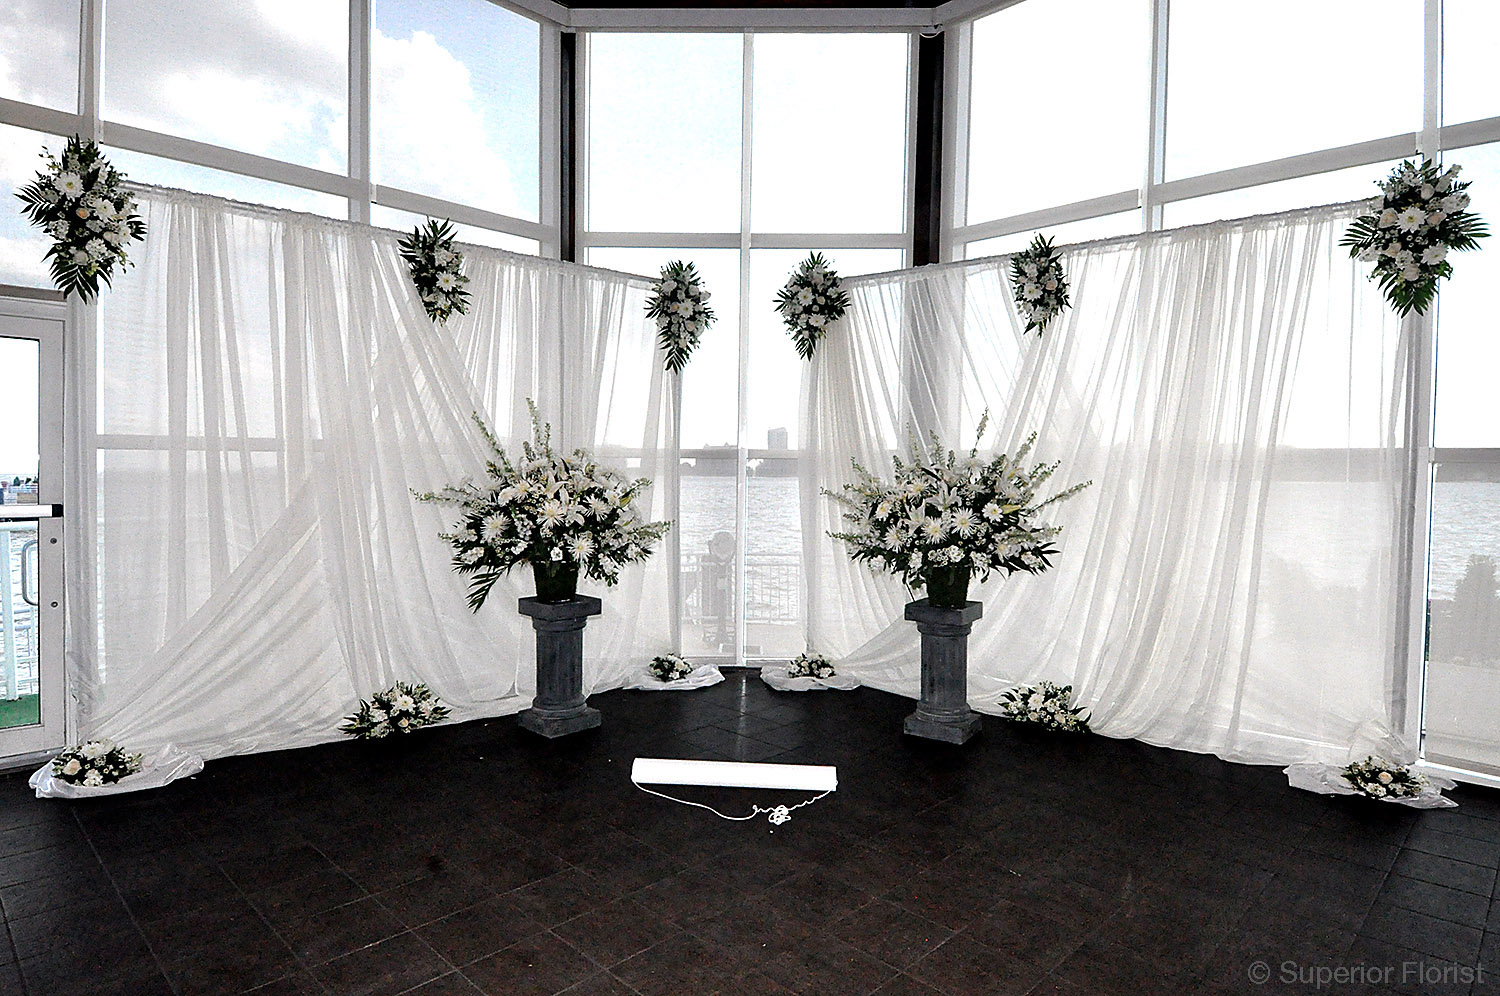 Superior Florist – Wedding Ceremony: Cluster and teardrop arrangements above and below. Two matching floral arrangements on pedestals. Ceremonial area with two freestanding panels of sheer fabric.